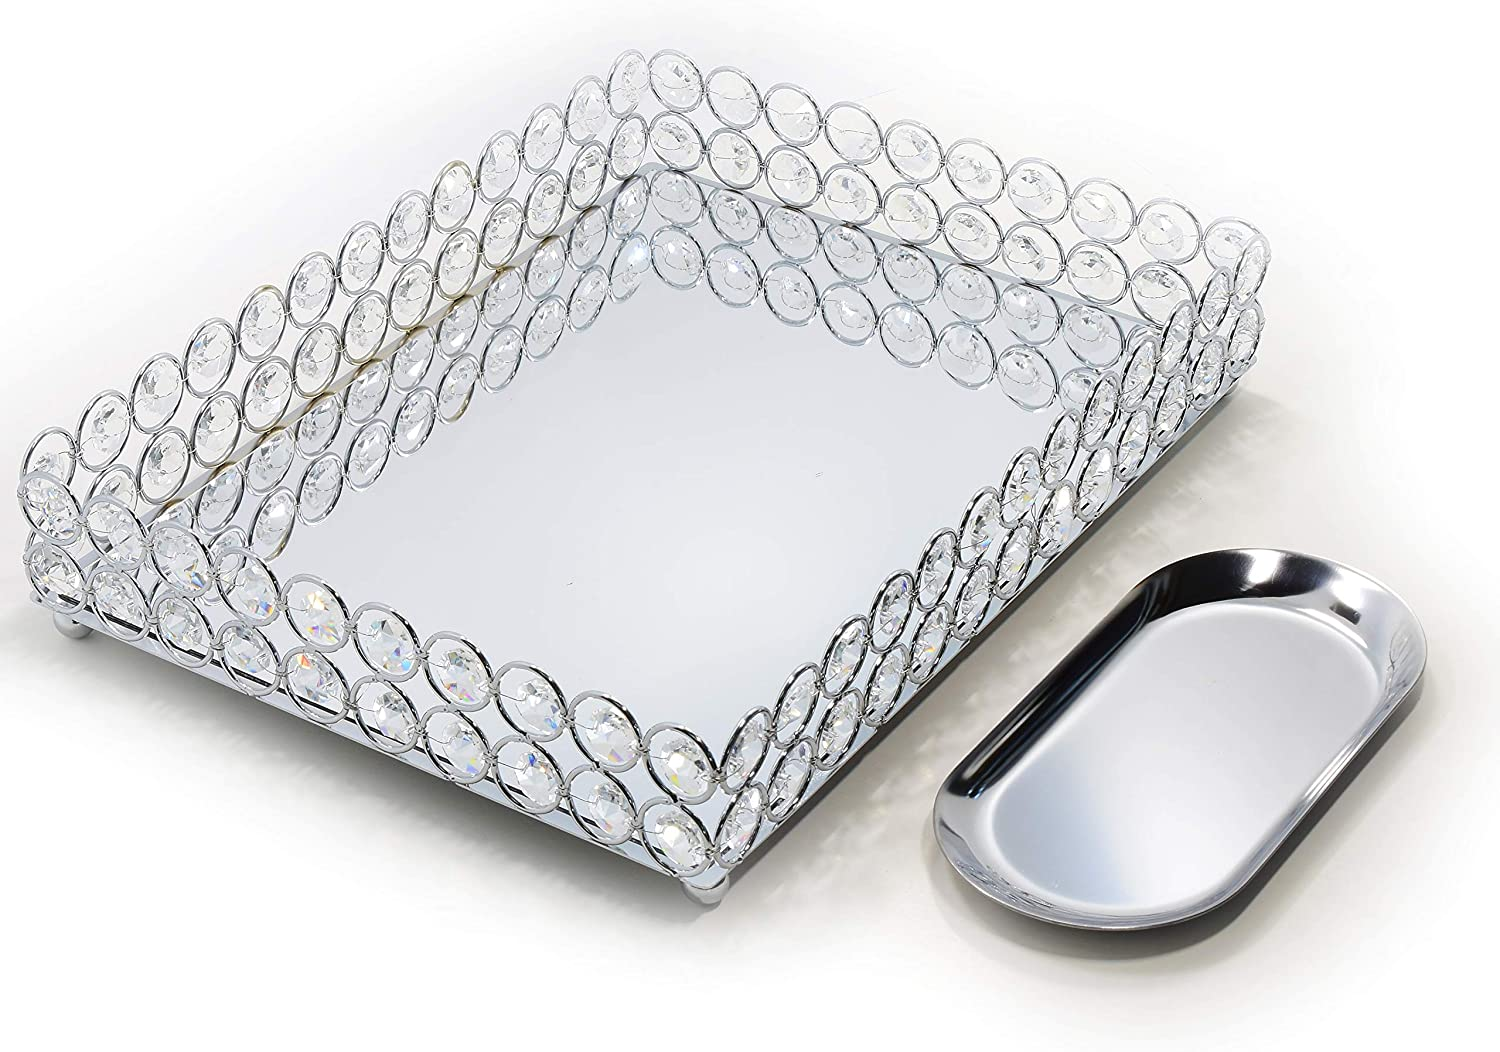 Lindlemann Mirrored Crystal Vanity Tray Ornate Decorative Tray For Perfume Jewelry And Makeup Rectangle 12 X 9 Inches Silver Amazon Ca Home Kitchen